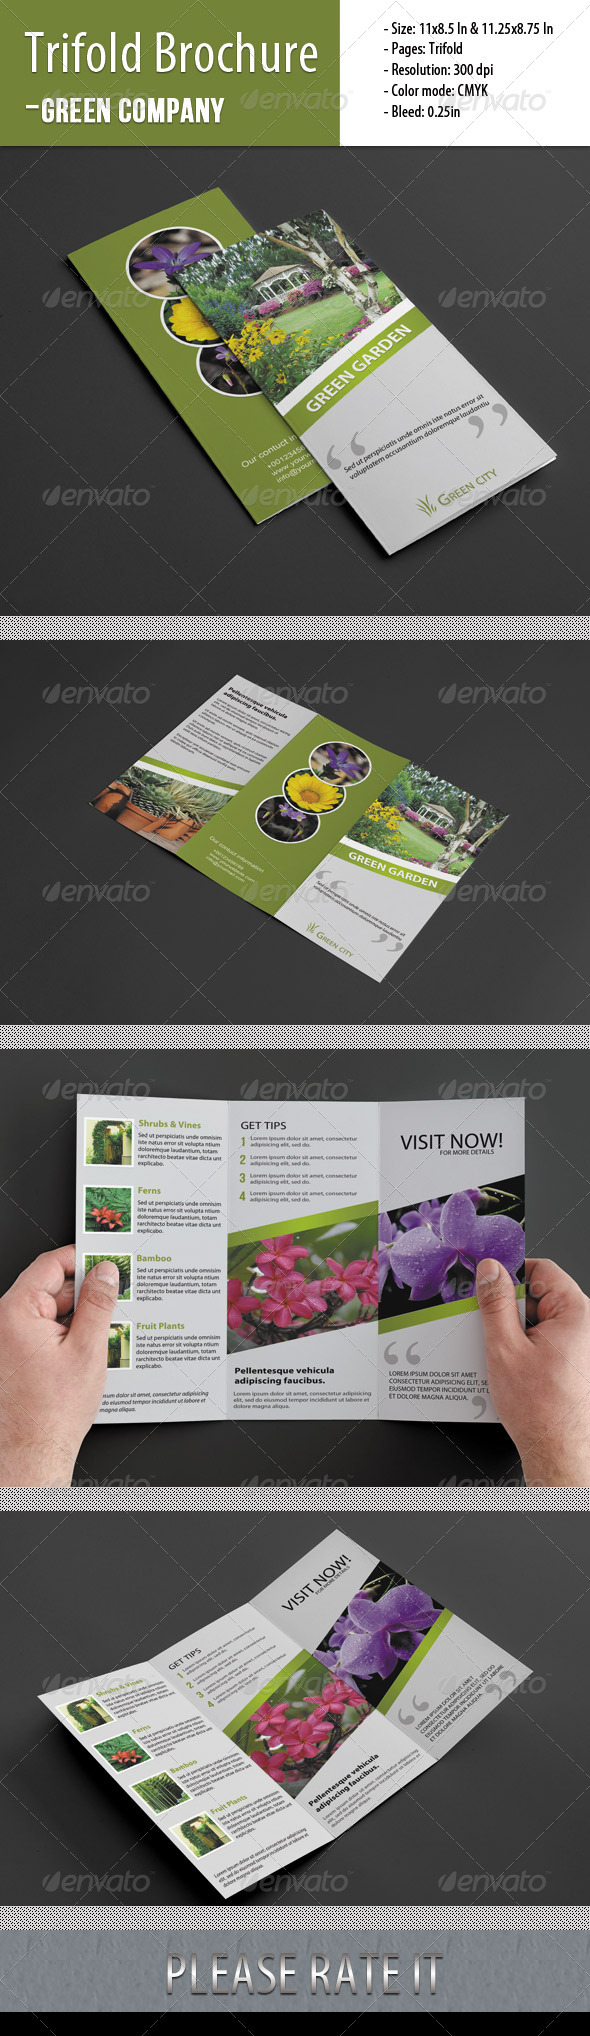 Trifold Brochure For Green Company - Corporate Brochures